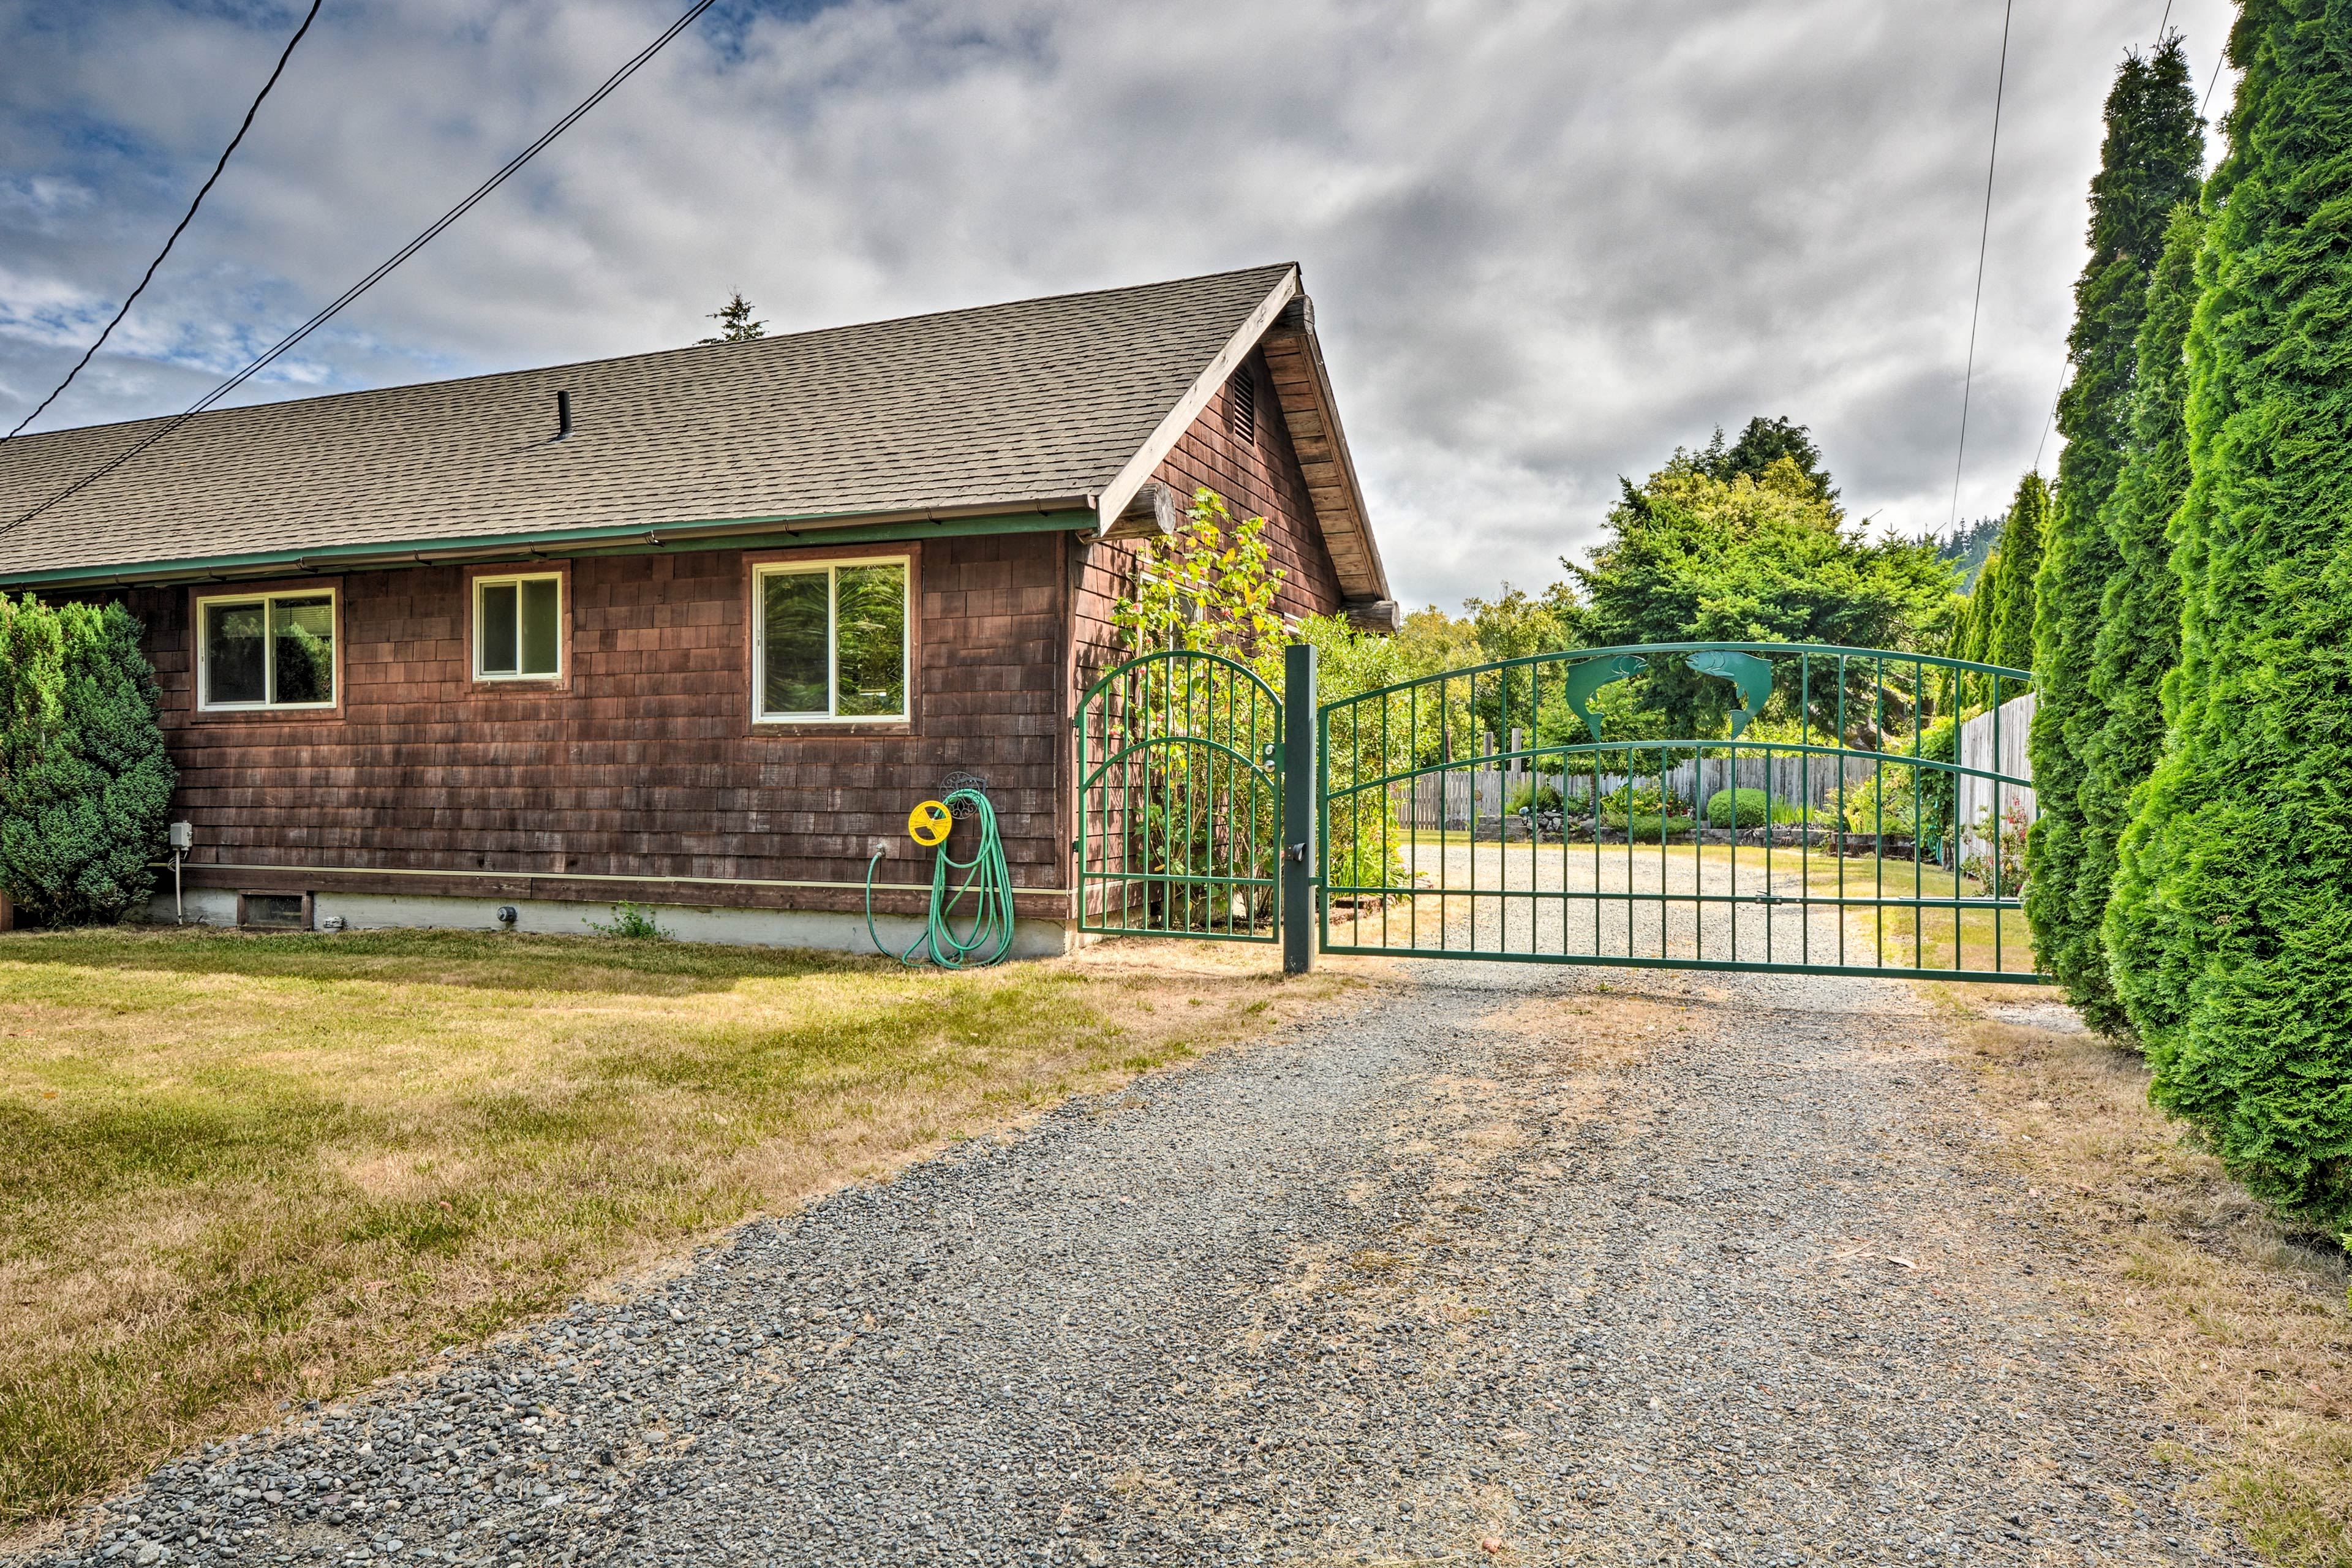 Find this home safely secured by a gate.